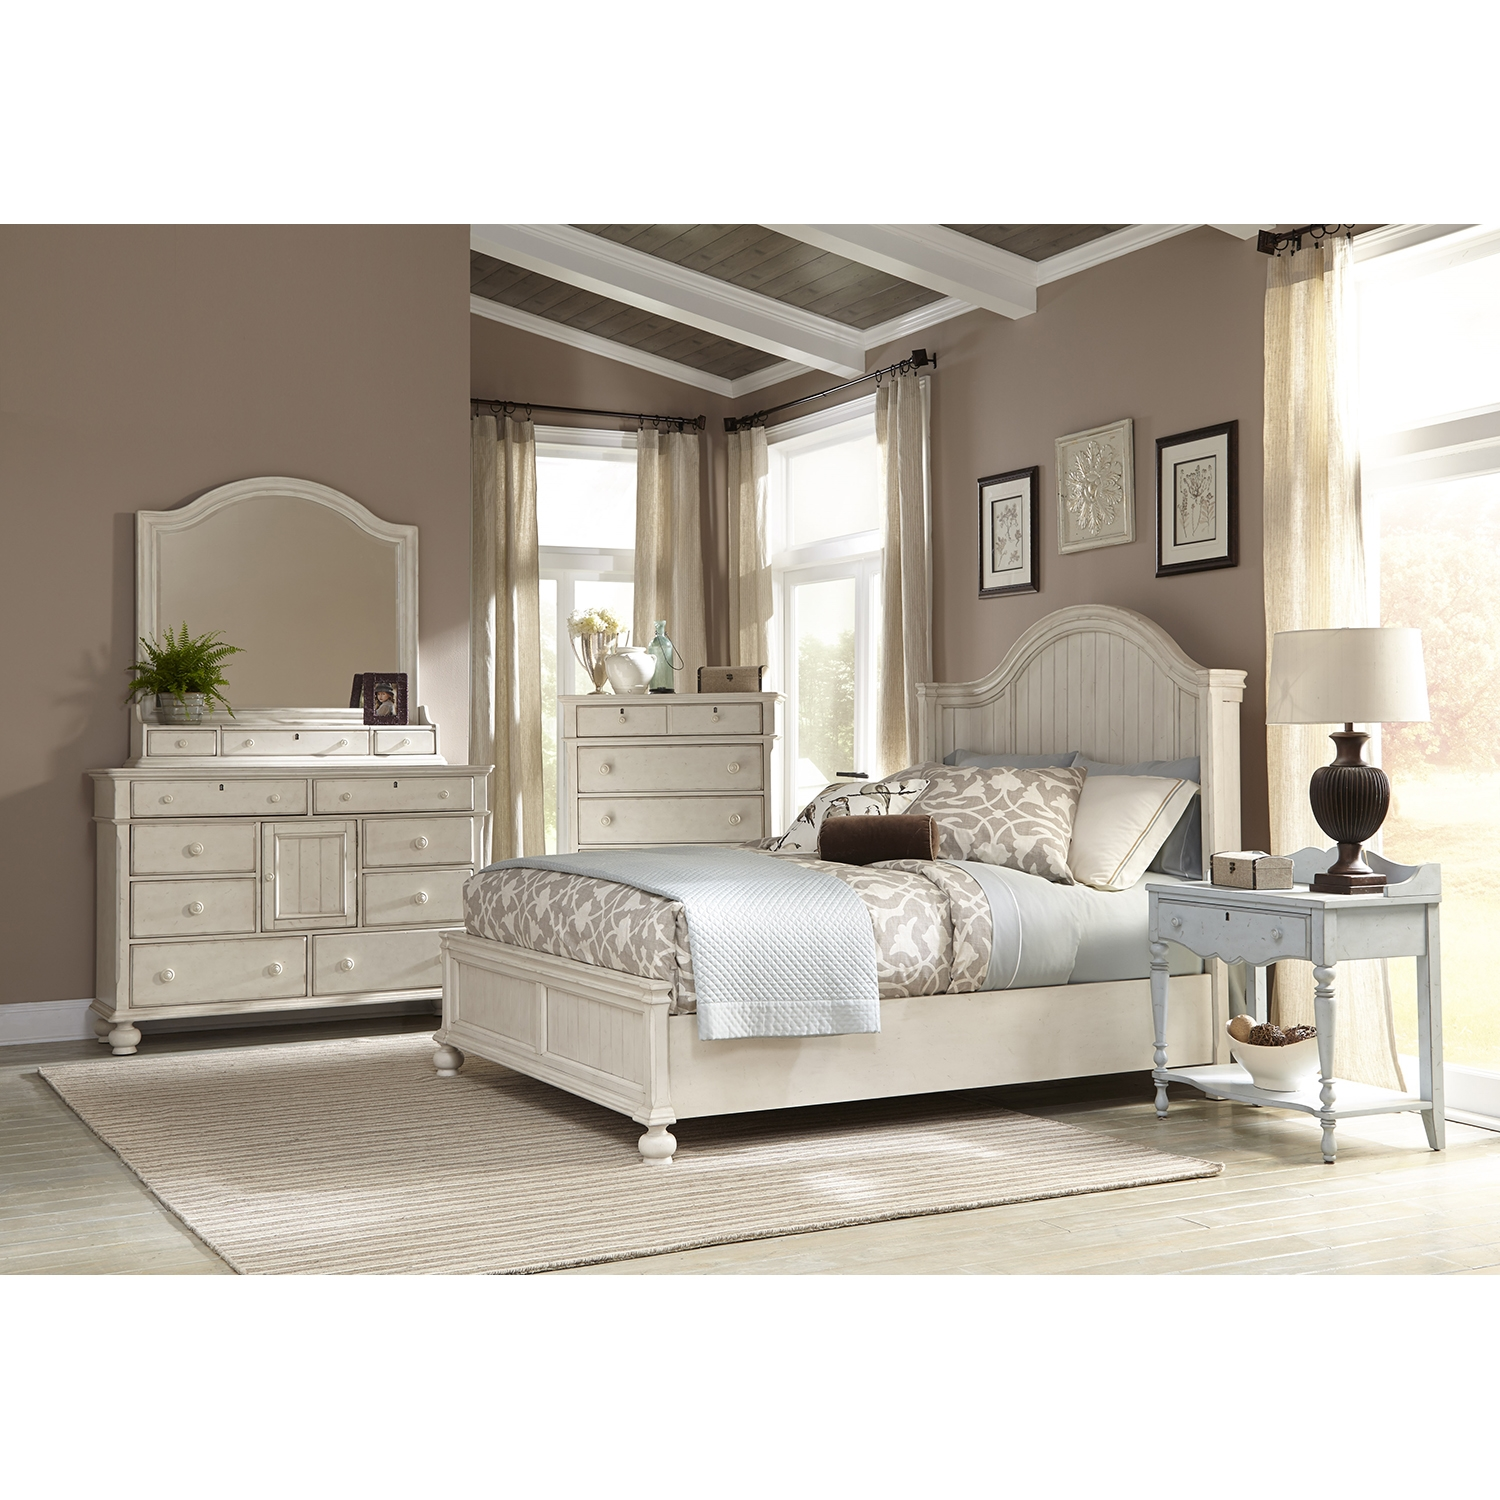 Newport King Panel Bed Bedroom Set in Antique Birch - AW-3710-66PAN-SET